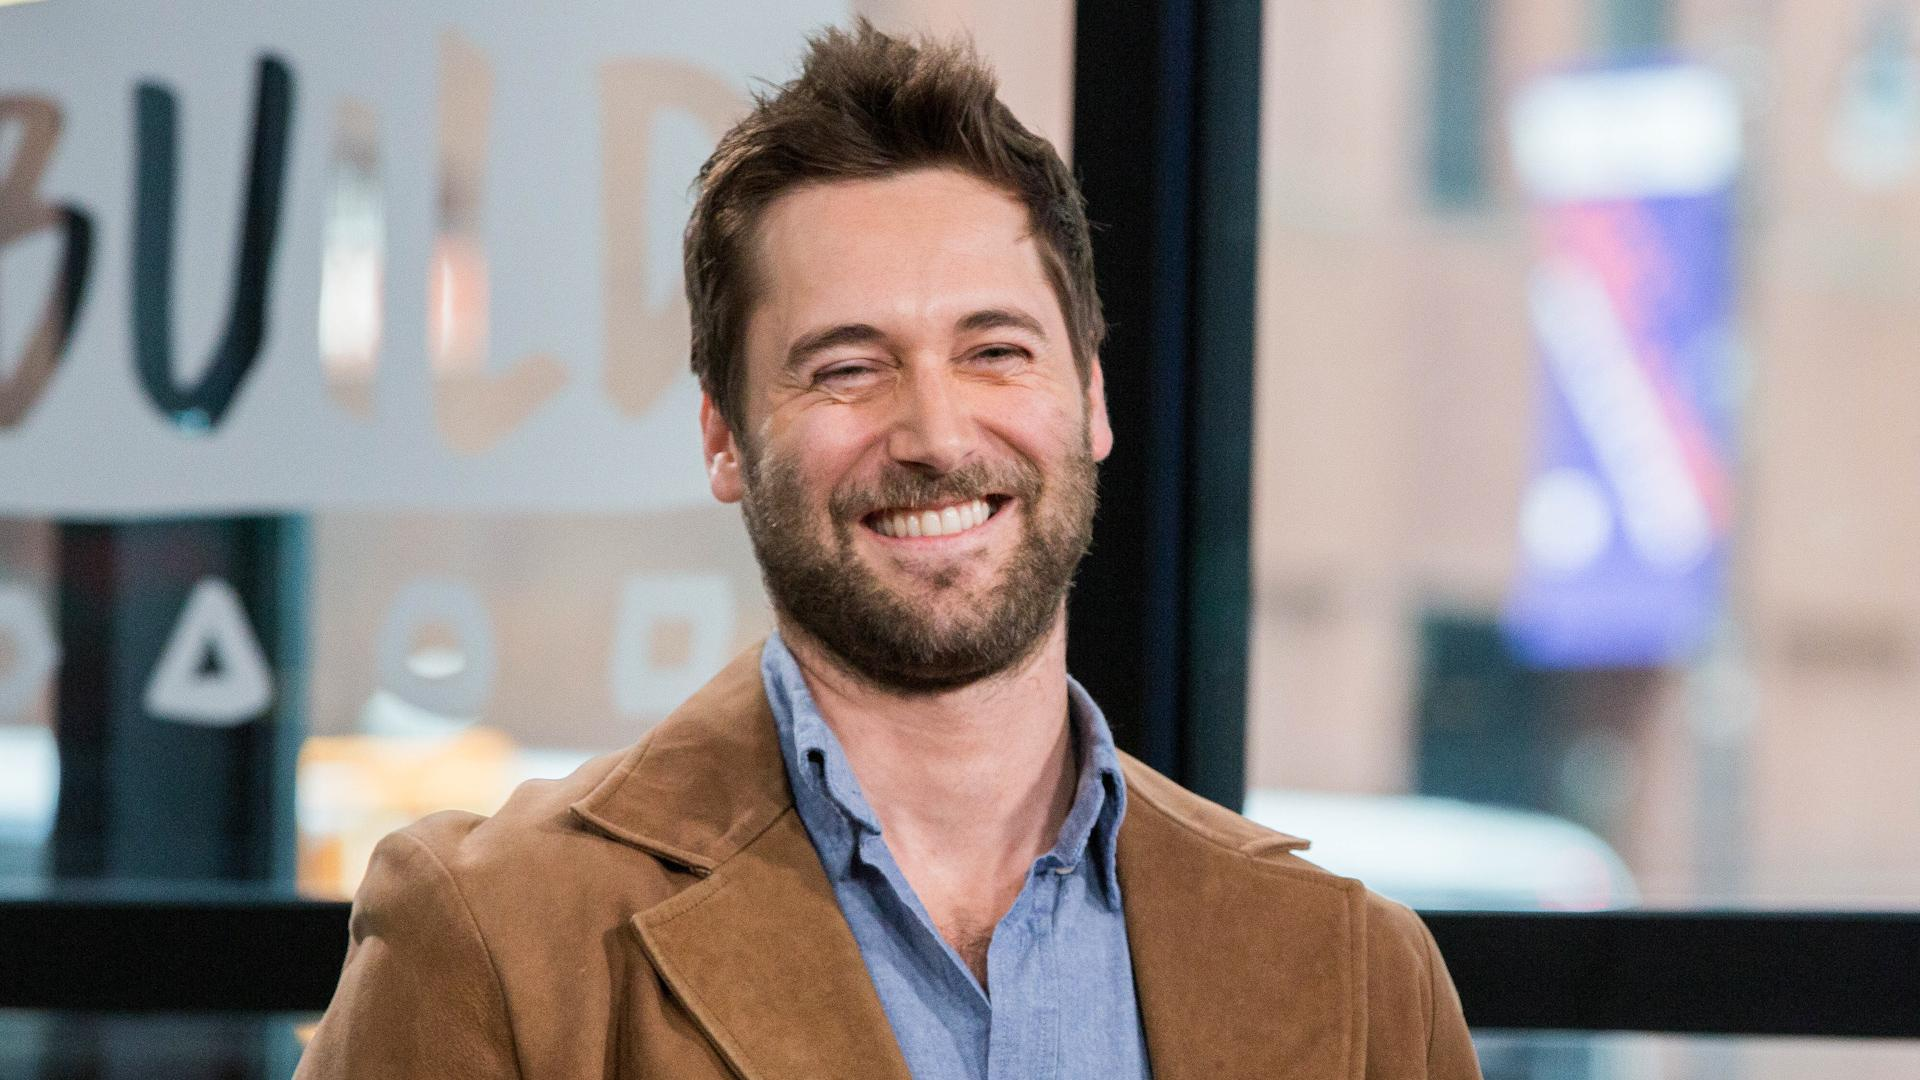 Ryan Eggold On Working With James Spader on 'The Blacklist'